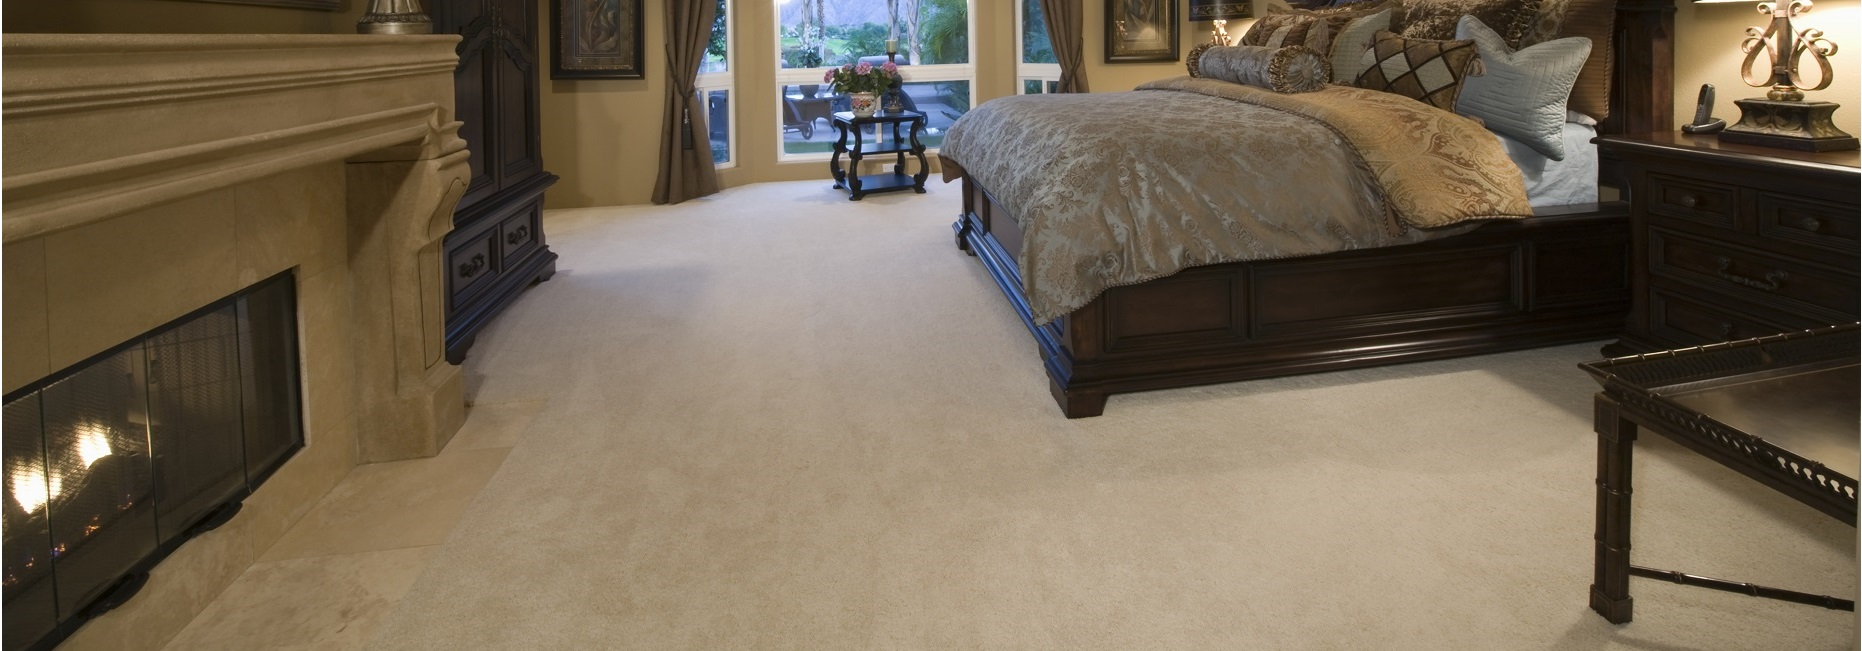 Residential Carpet Services